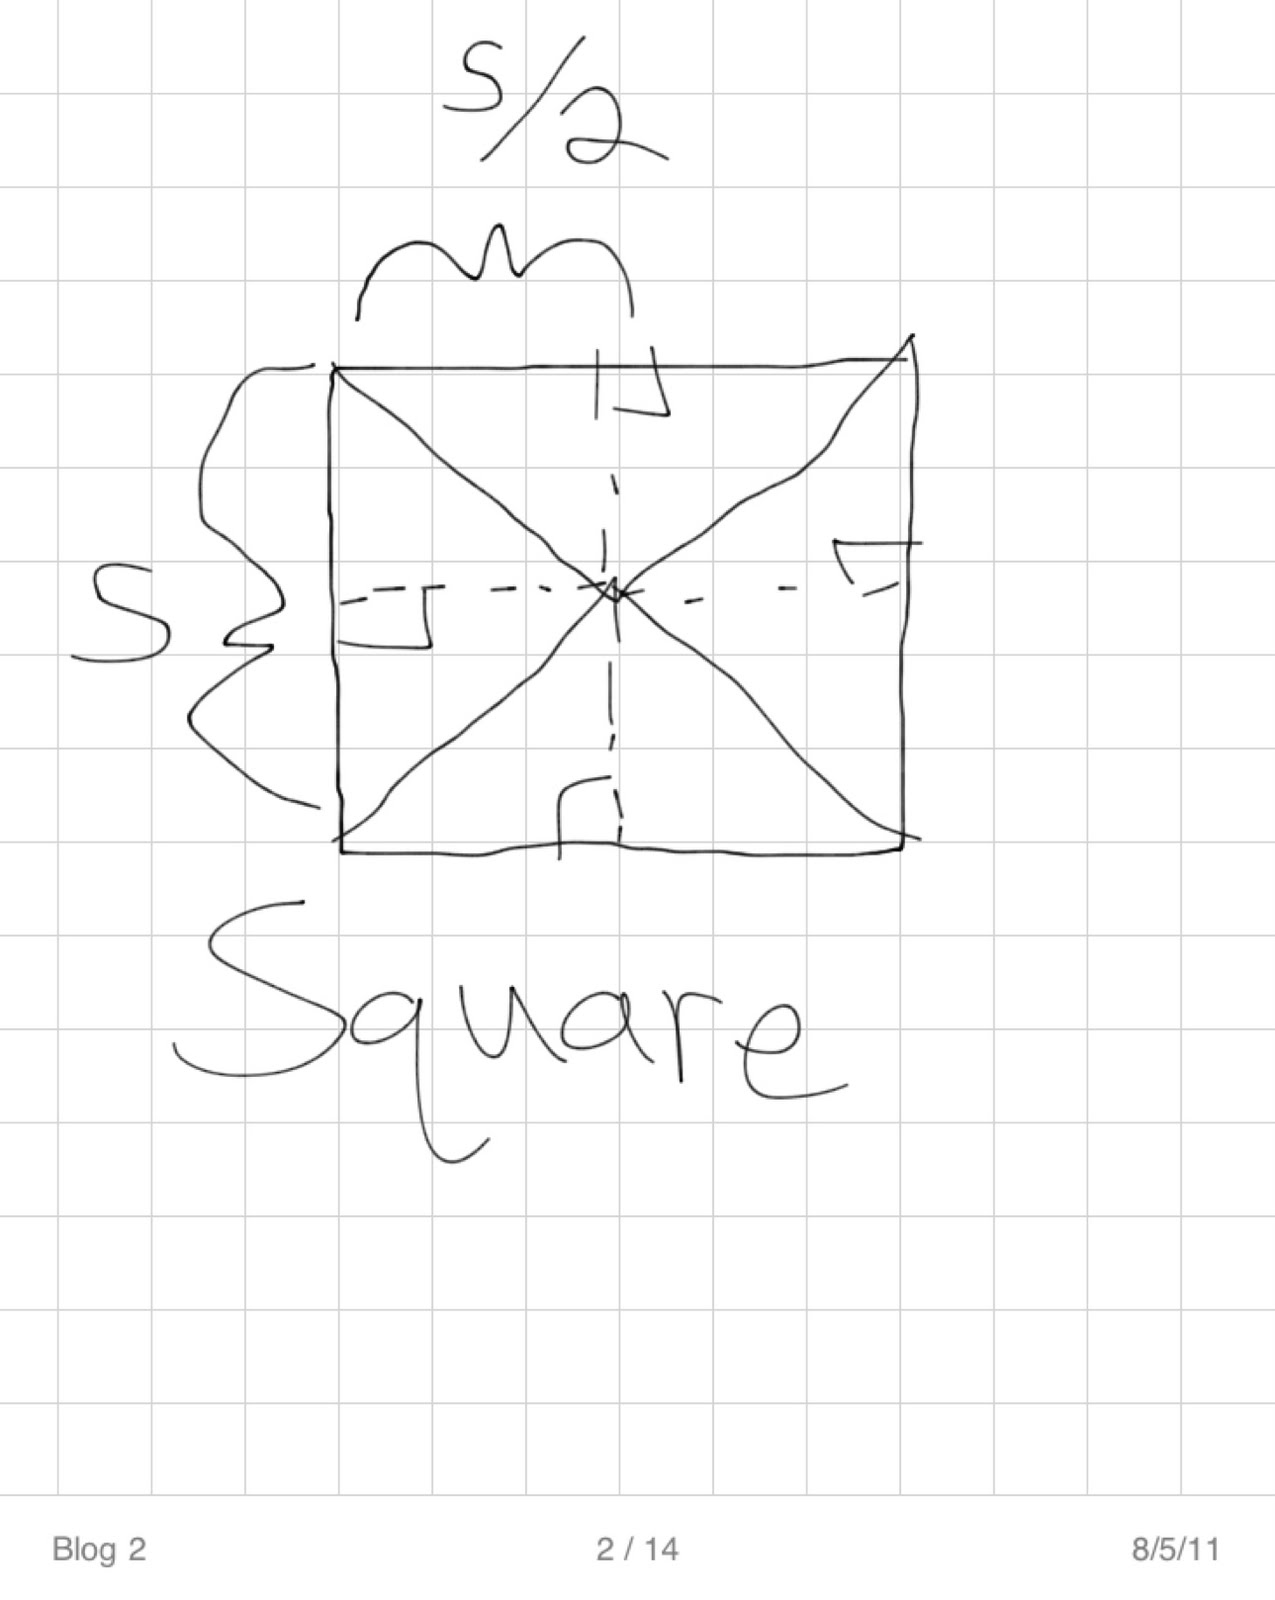 Educational Mathy Quirks: What's The Area Of A Regular